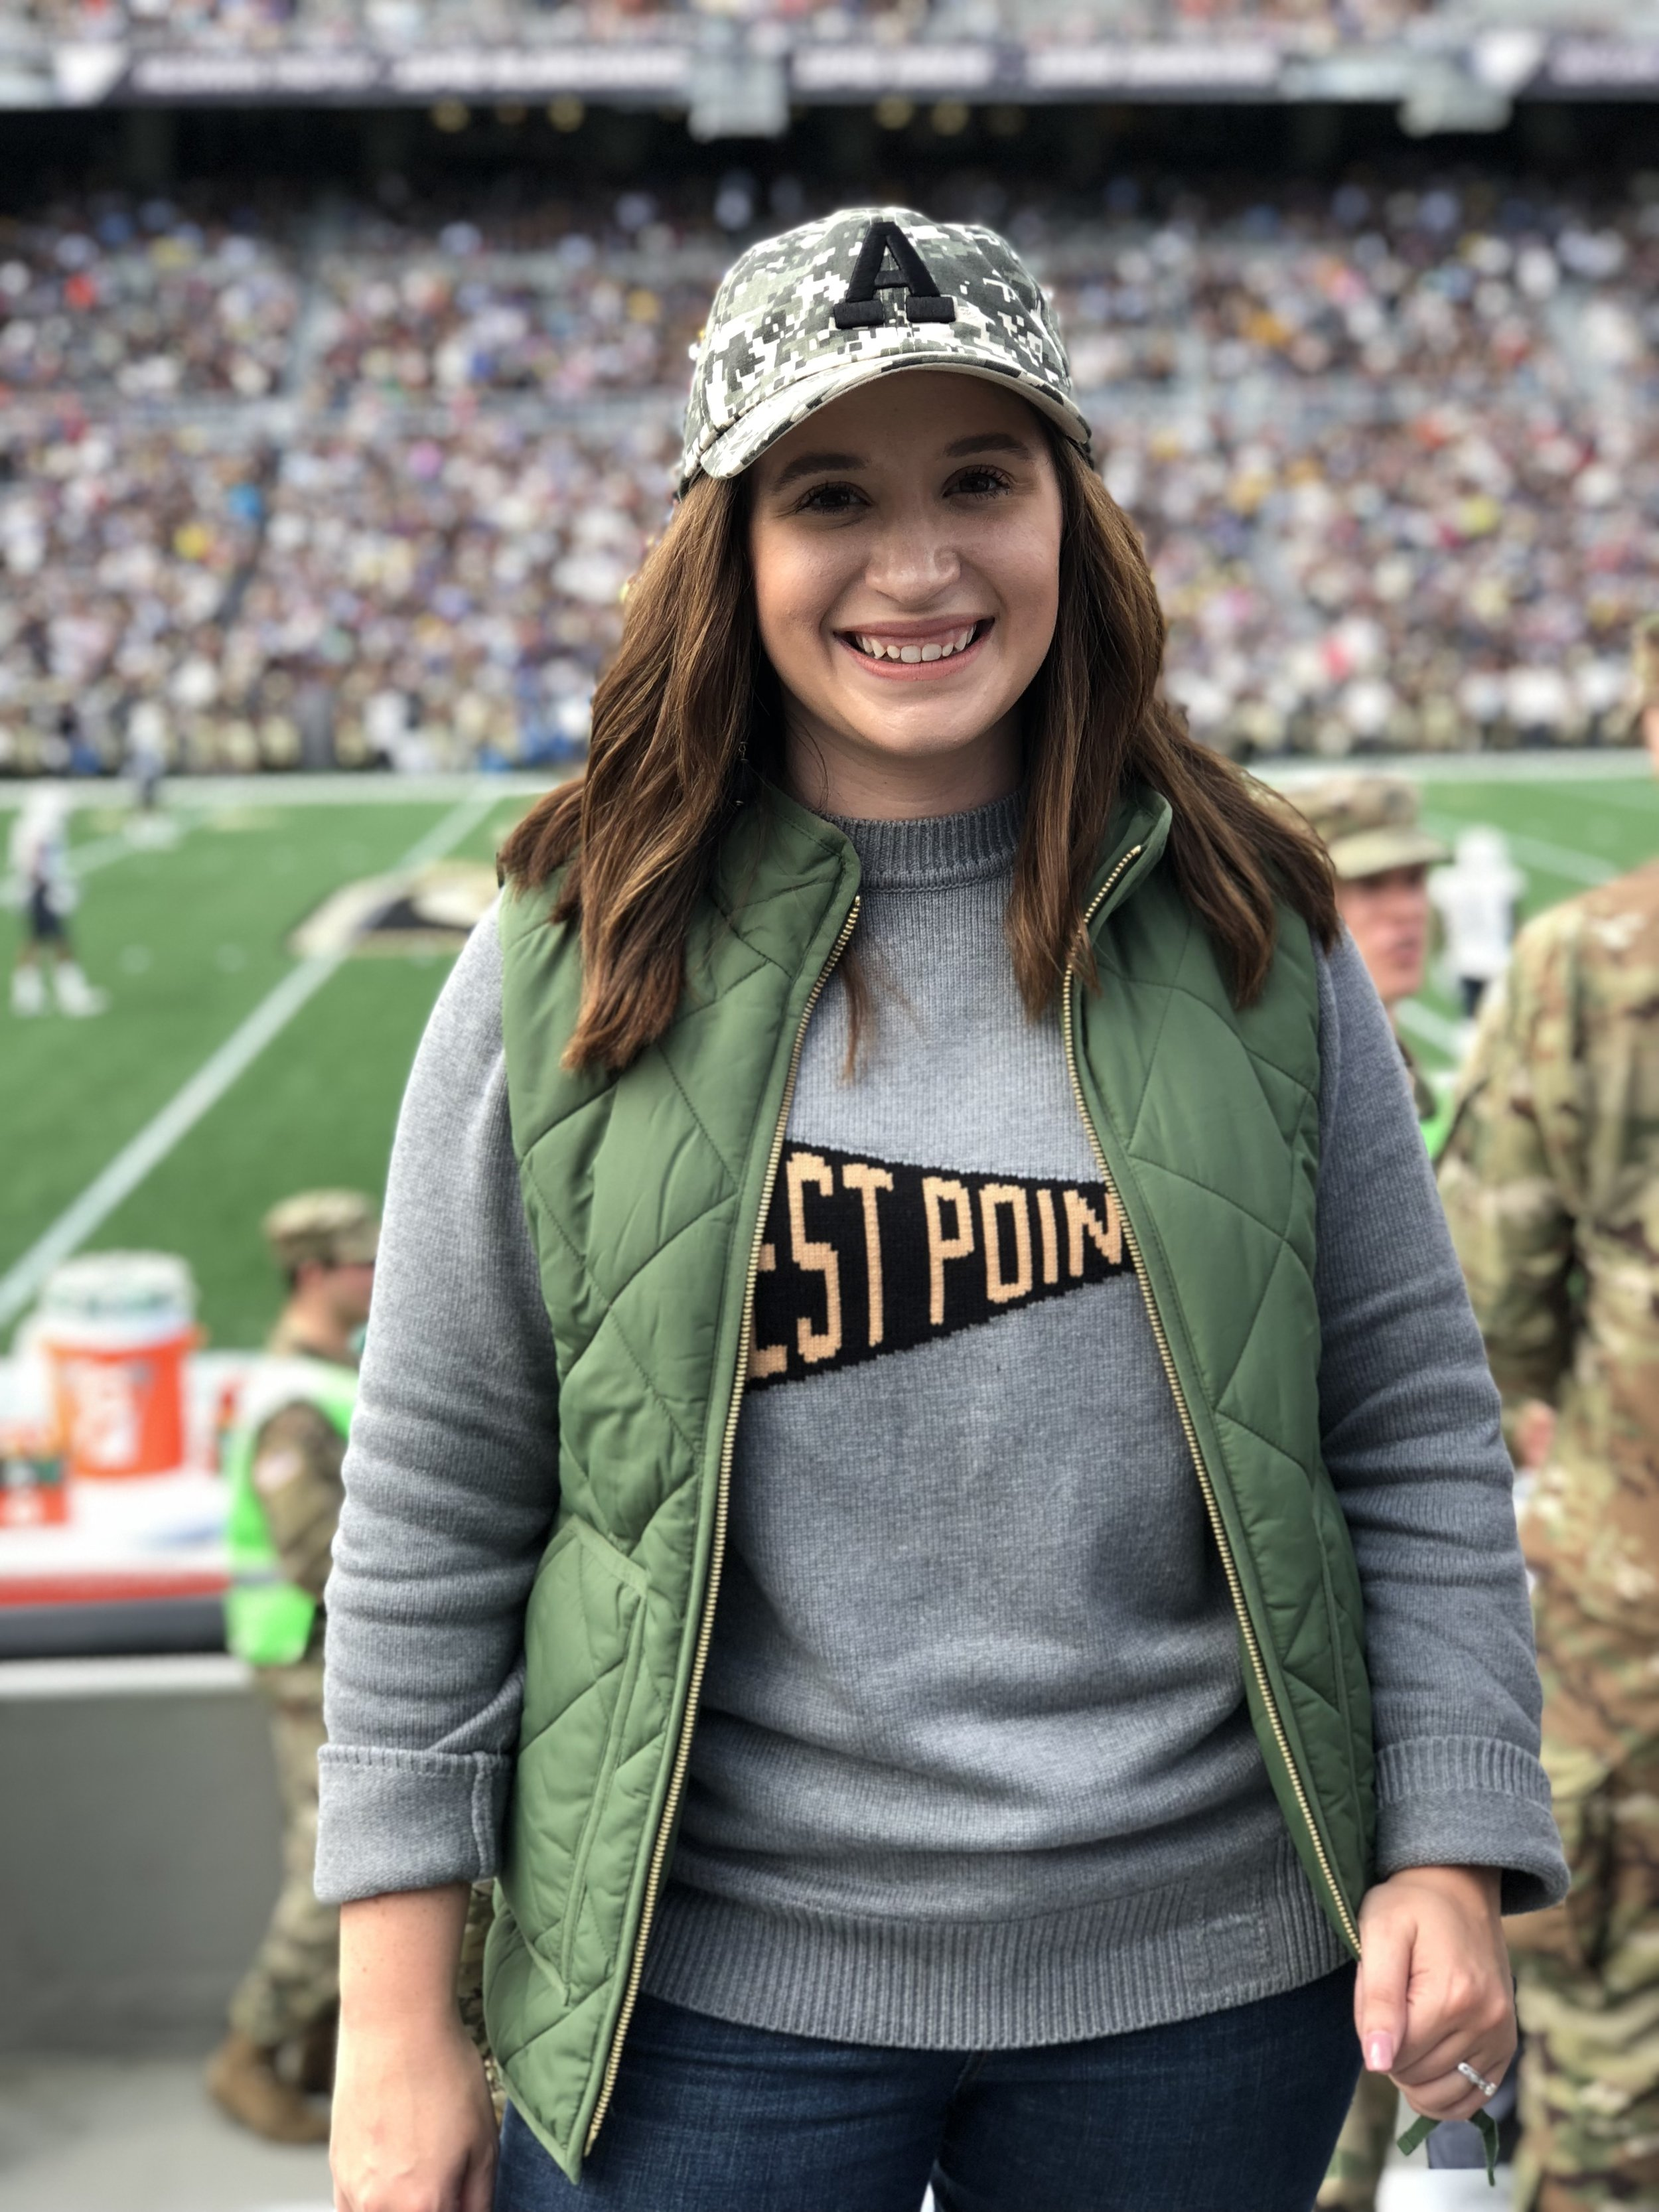 hillflint sweater outfits, army football outfit, west point football outfit, black and gold football outfit, army west point football